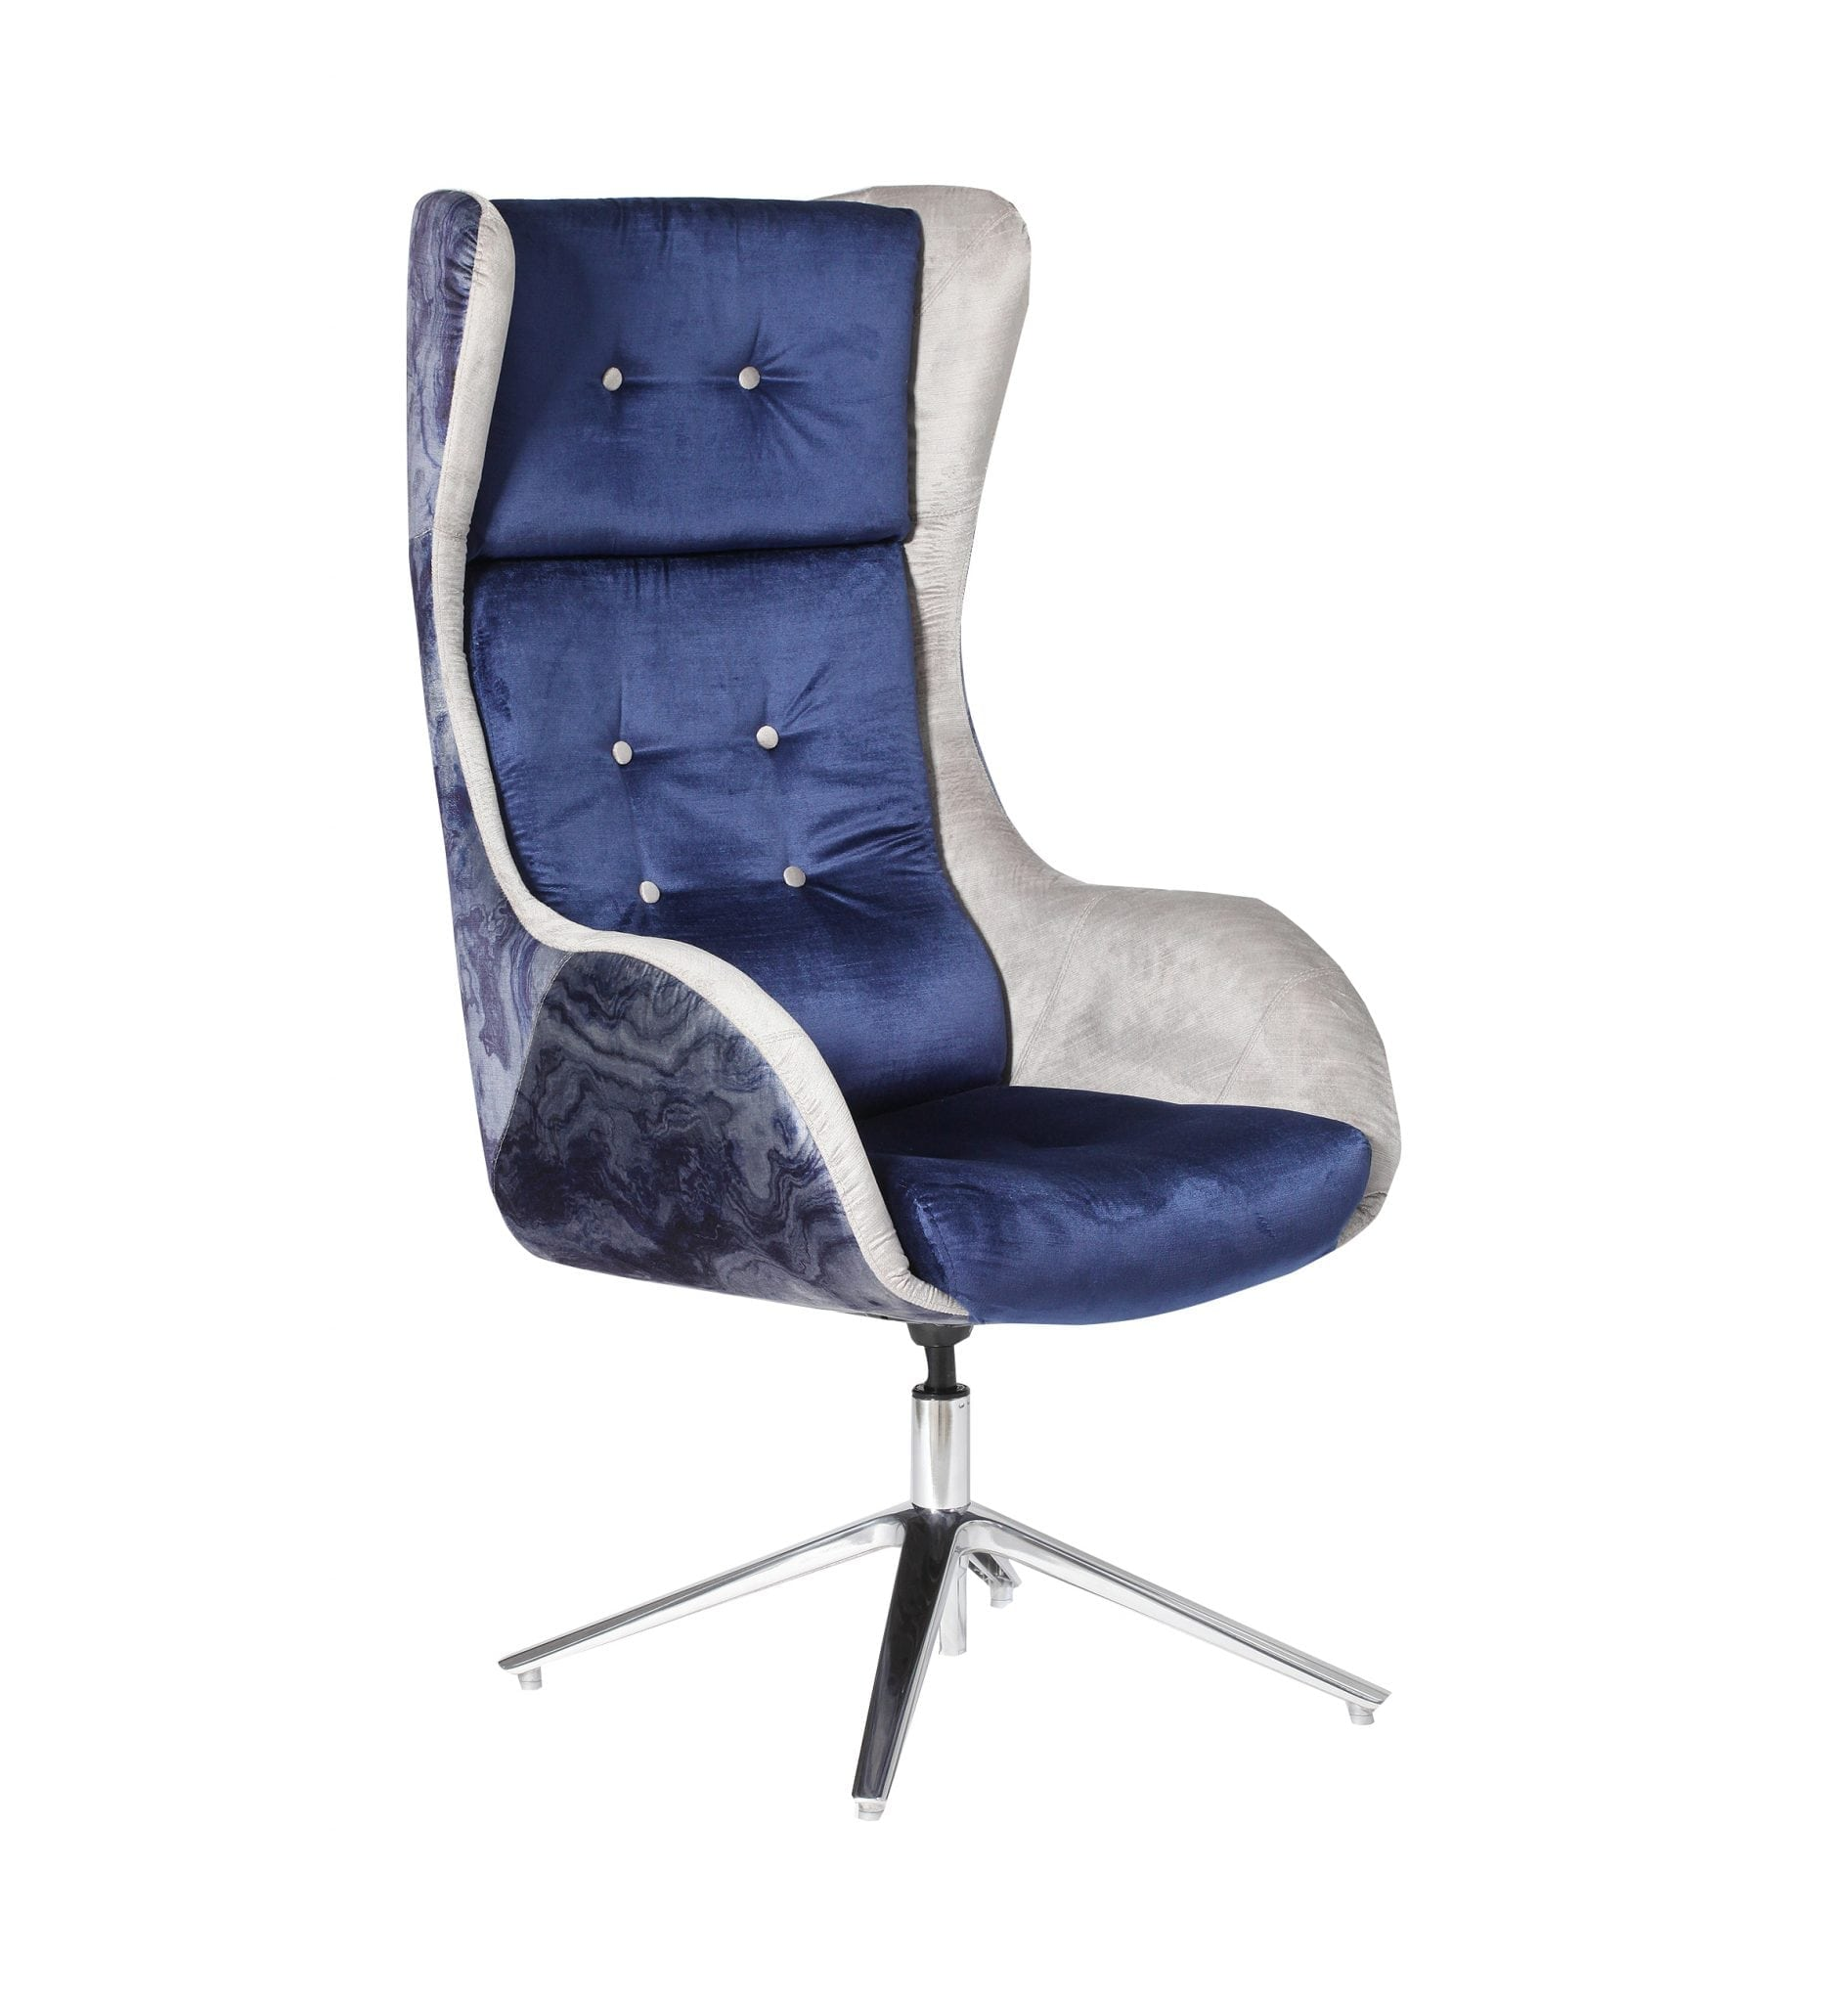 VLN12 - Villain - A high backed executive boardroom, meeting room or lounge chair with an aluminium star base